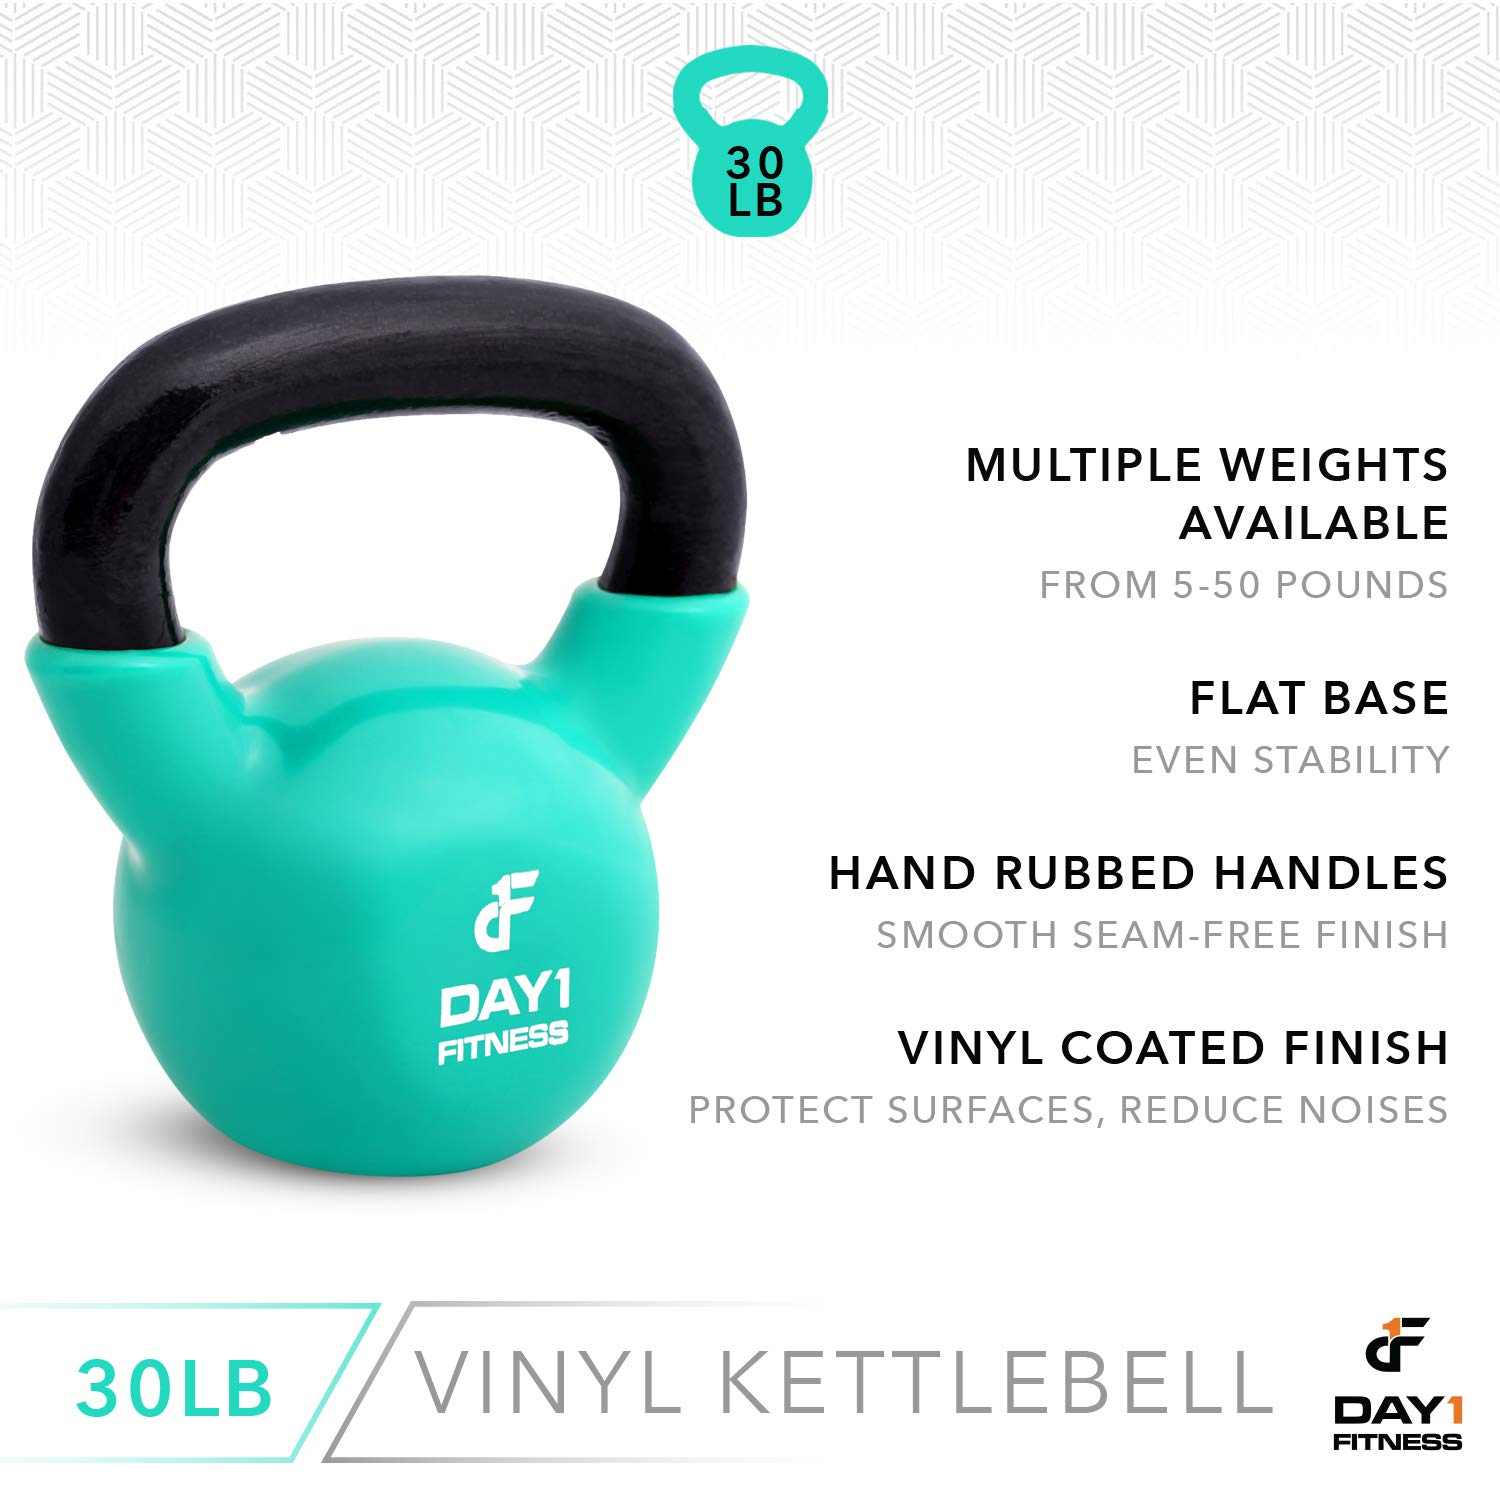 Day 1 Fitness Kettlebell Weights Vinyl Coated Iron 30 Pounds - Coated for Floor and Equipment Protection, Noise Reduction - Free Weights for Ballistic, Core, Weight Training by Day 1 Fitness (Image #4)